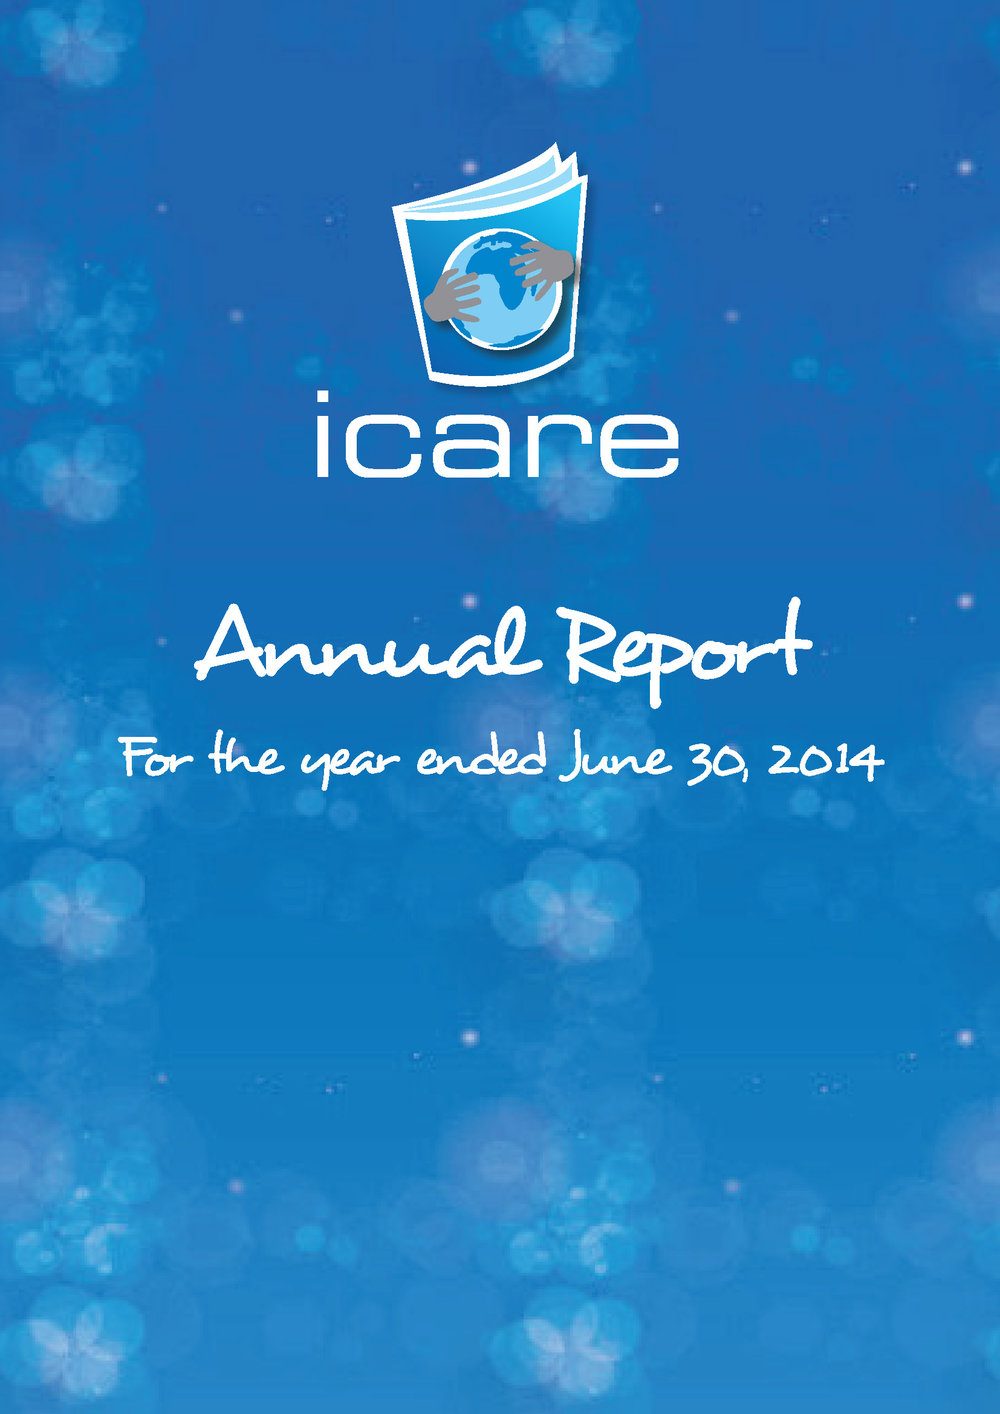 2014-Annual-Report image.jpg